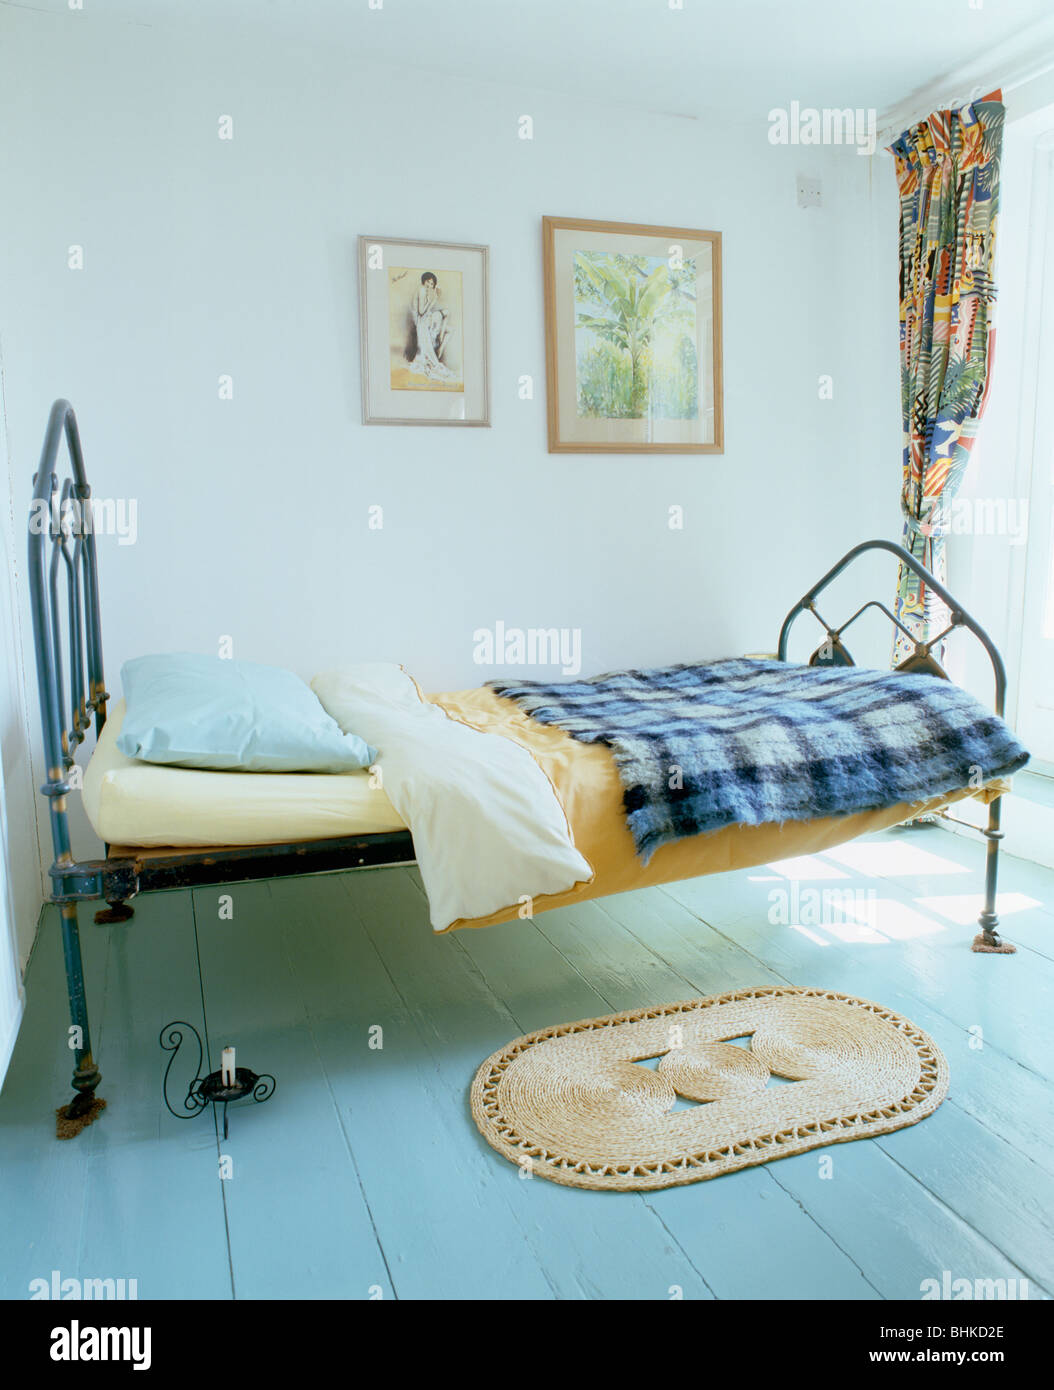 Blue Checked Blanket On Black Cast Iron Single Bed In Simple White Bedroom With Small Rug Pale Painted Wooden Floor